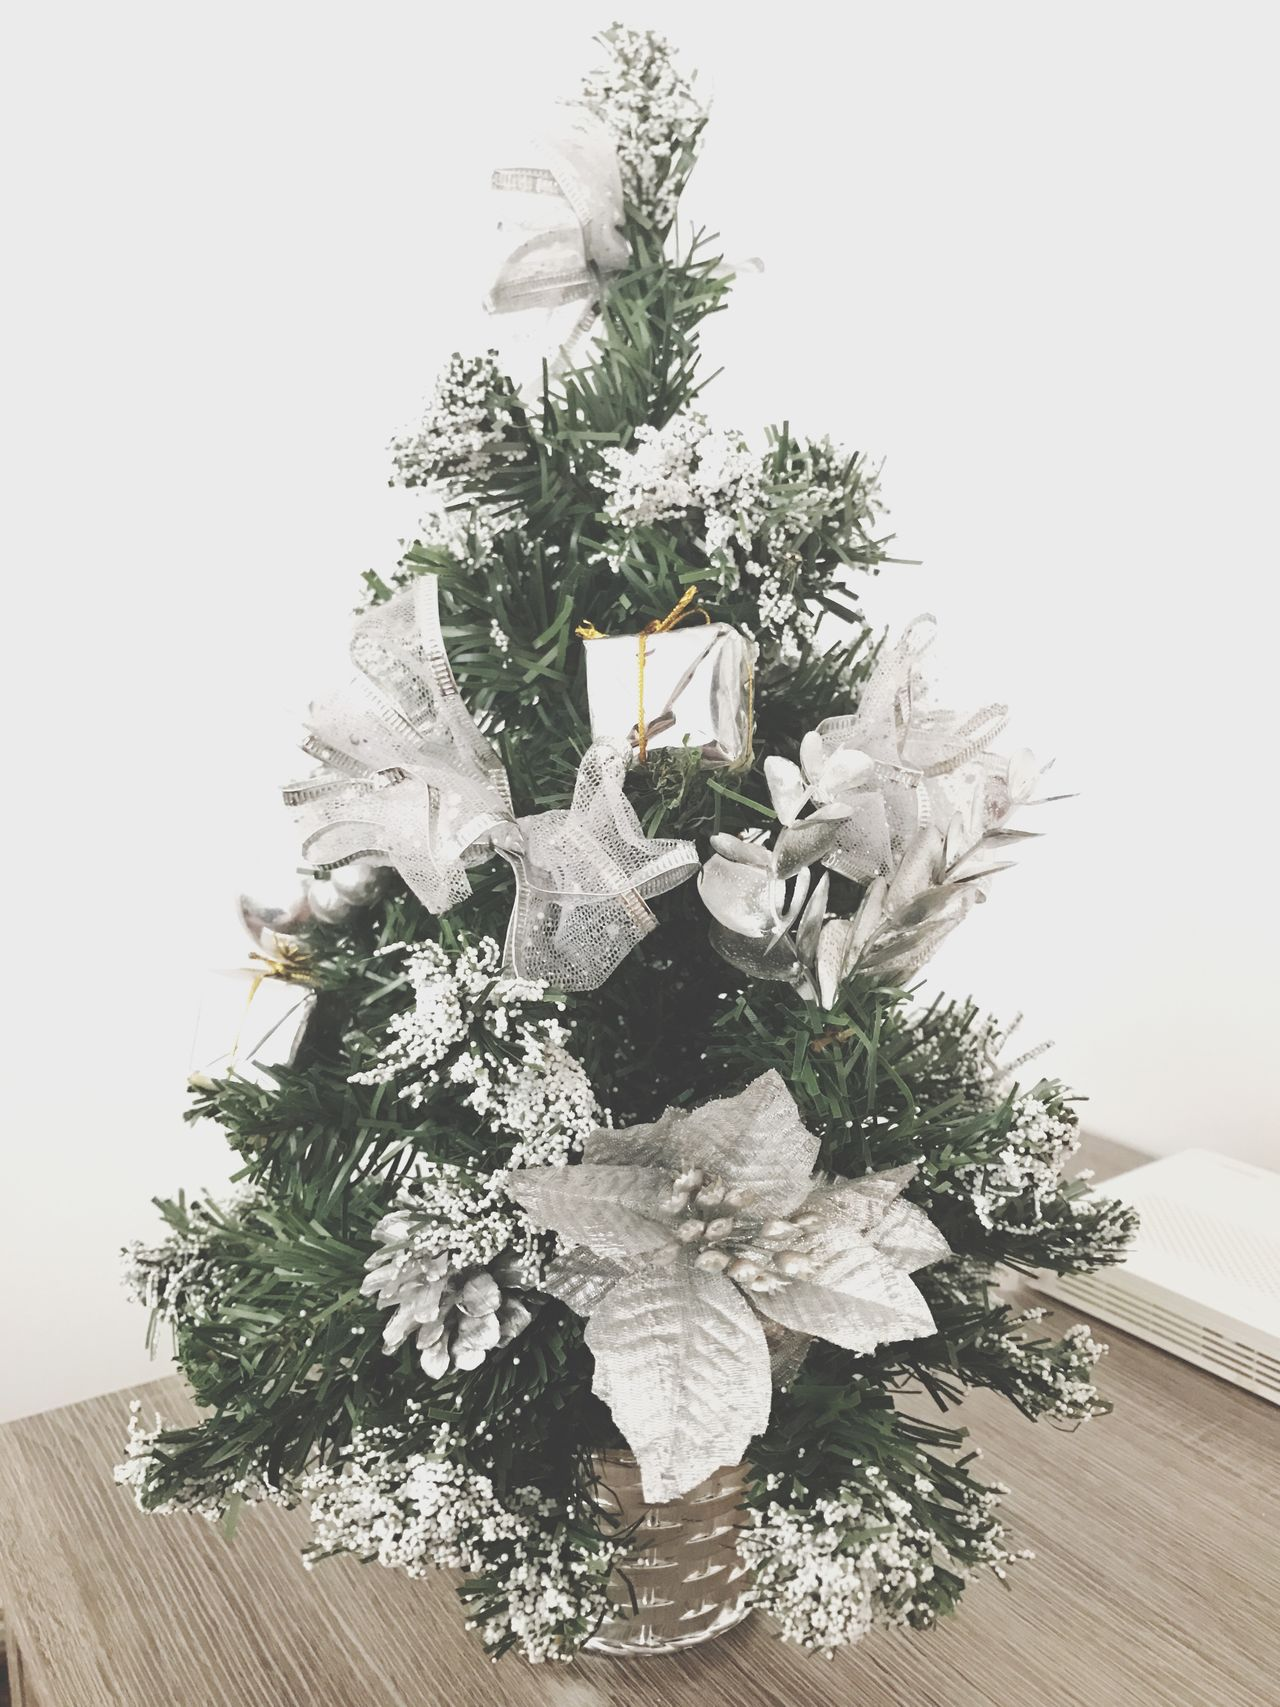 Tree Studio Shot No People Archival Tradition Christmas Christmas Decoration Evergreen Tree Christmas Tree Wreath White Background Indoors  Nature Freshness Day